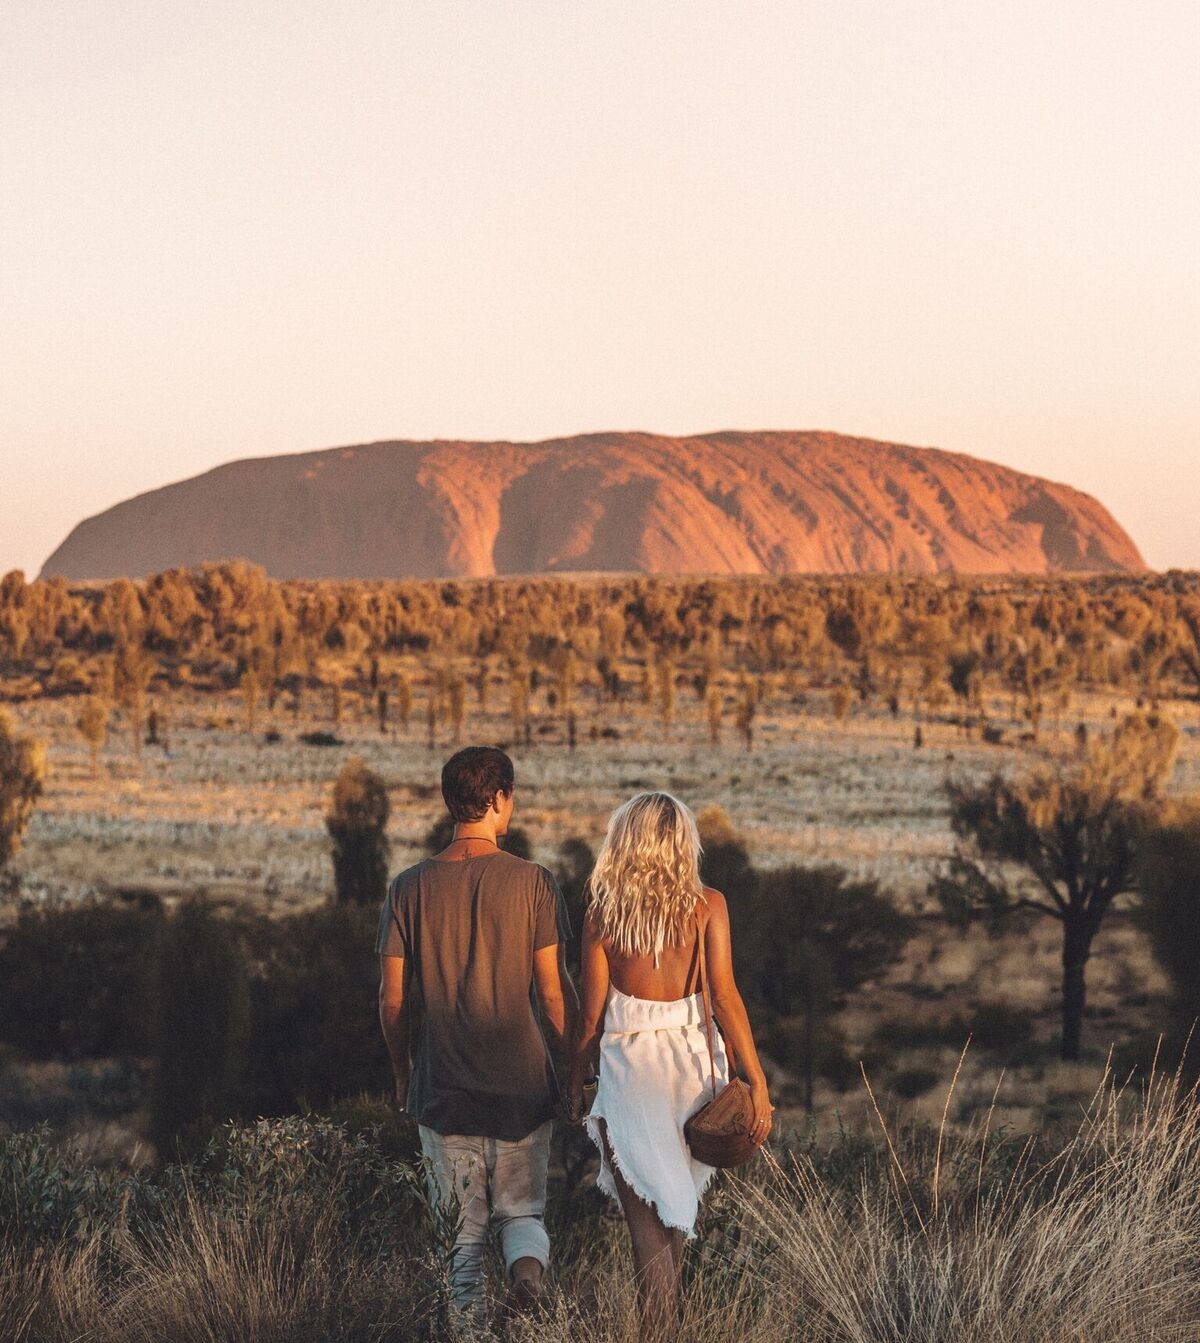 two people walking in the outback with Ayers Rock in the distance